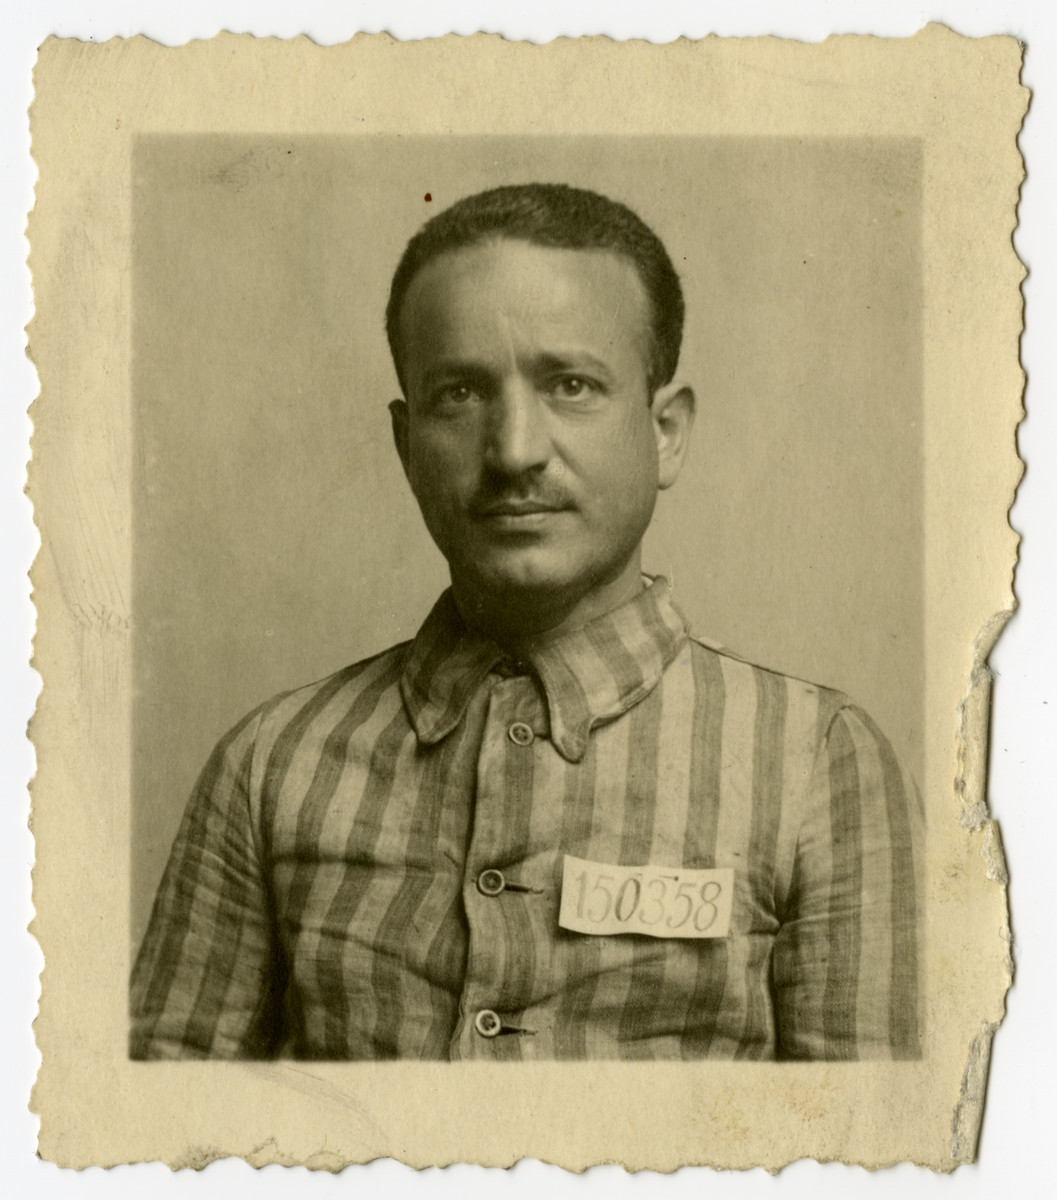 Moses Rontal poses in his former camp uniform some time after liberation.